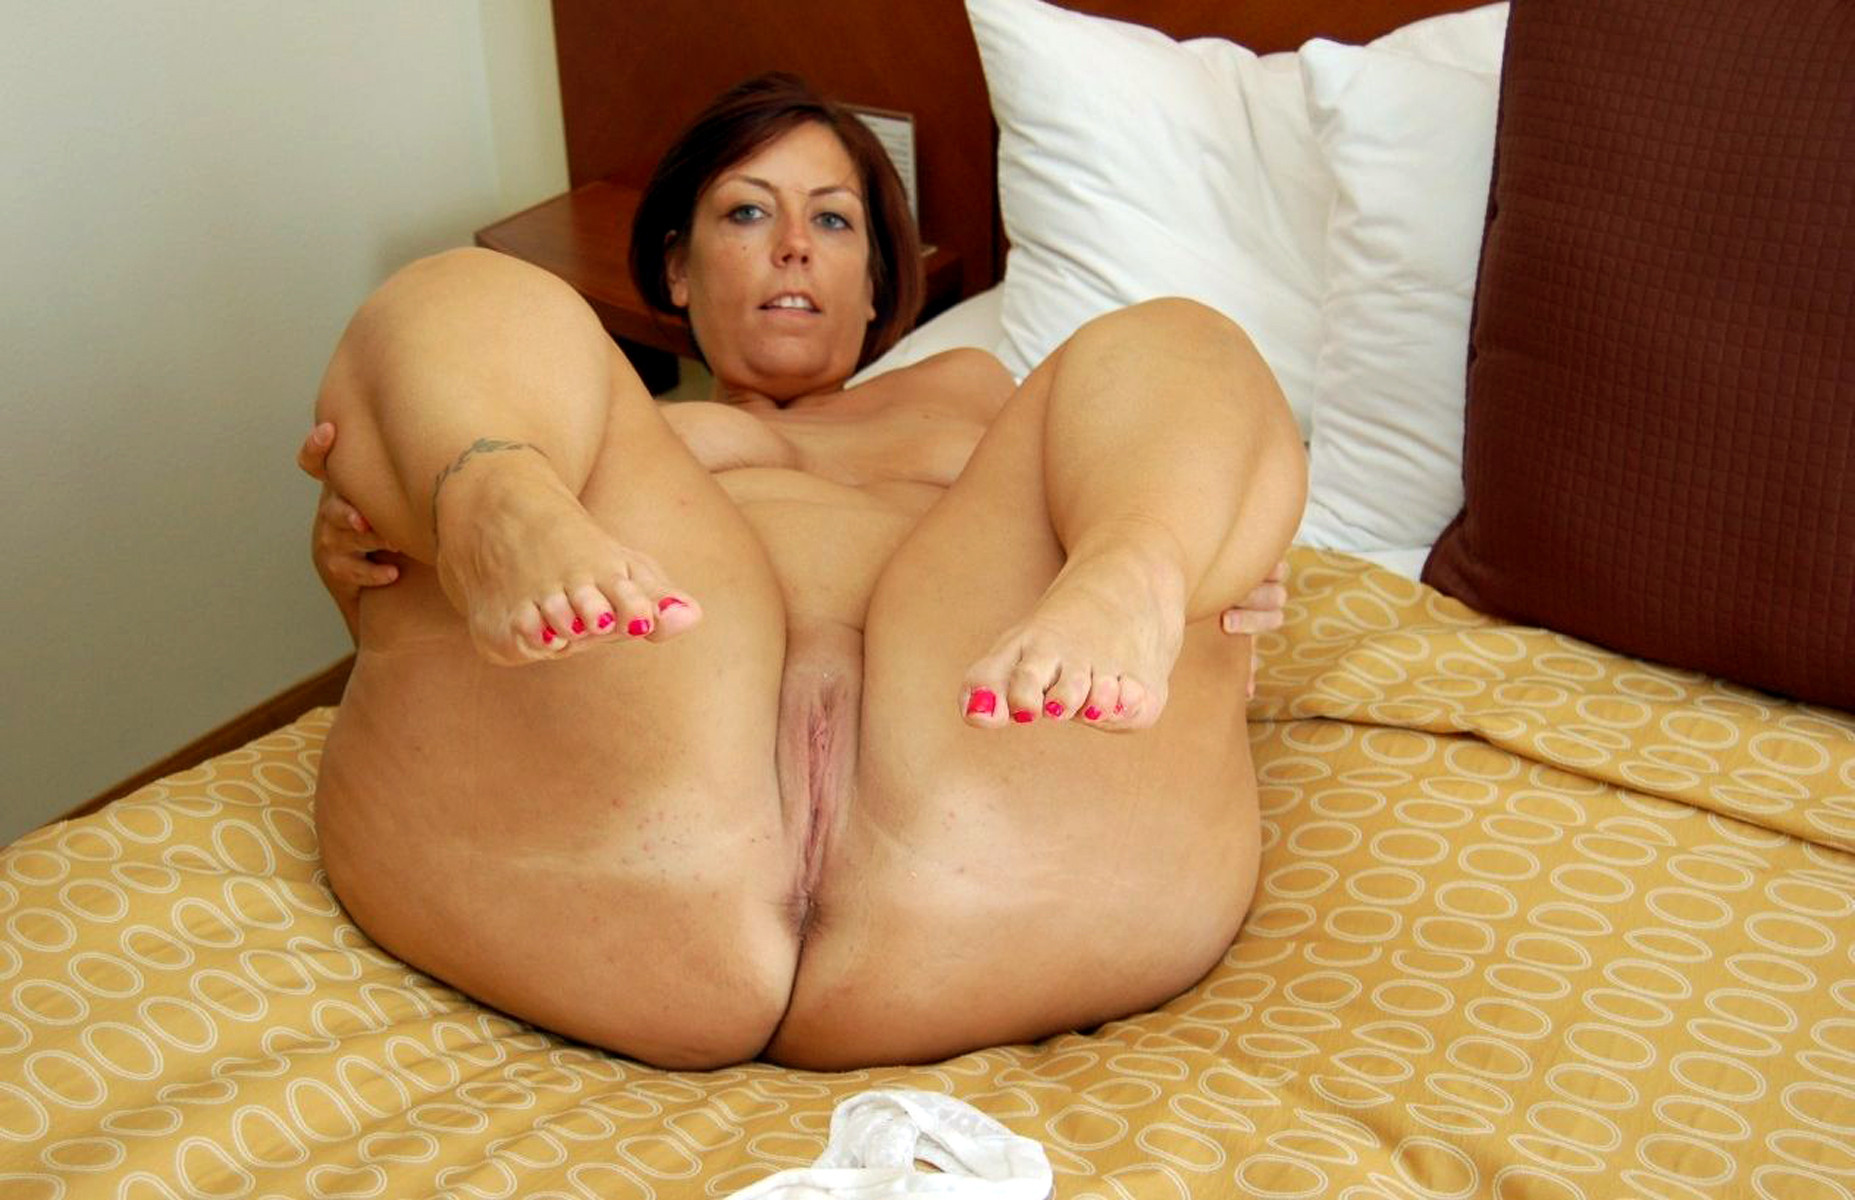 Sorry, that feet spreading toes milf asshole very valuable phrase